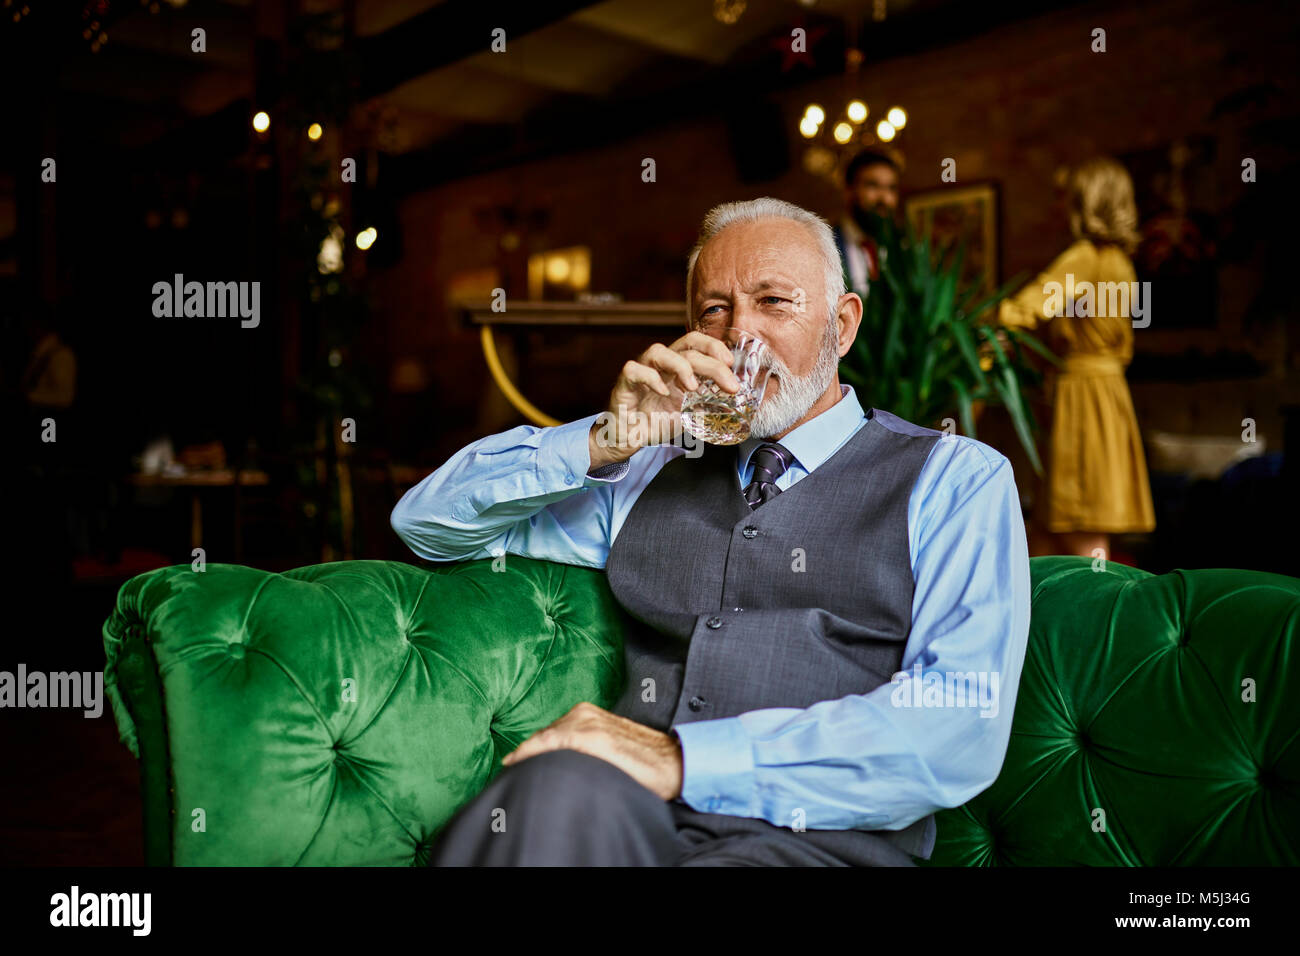 Portrait of elegant senior man sitting on couch in a bar drinking from tumbler - Stock Image